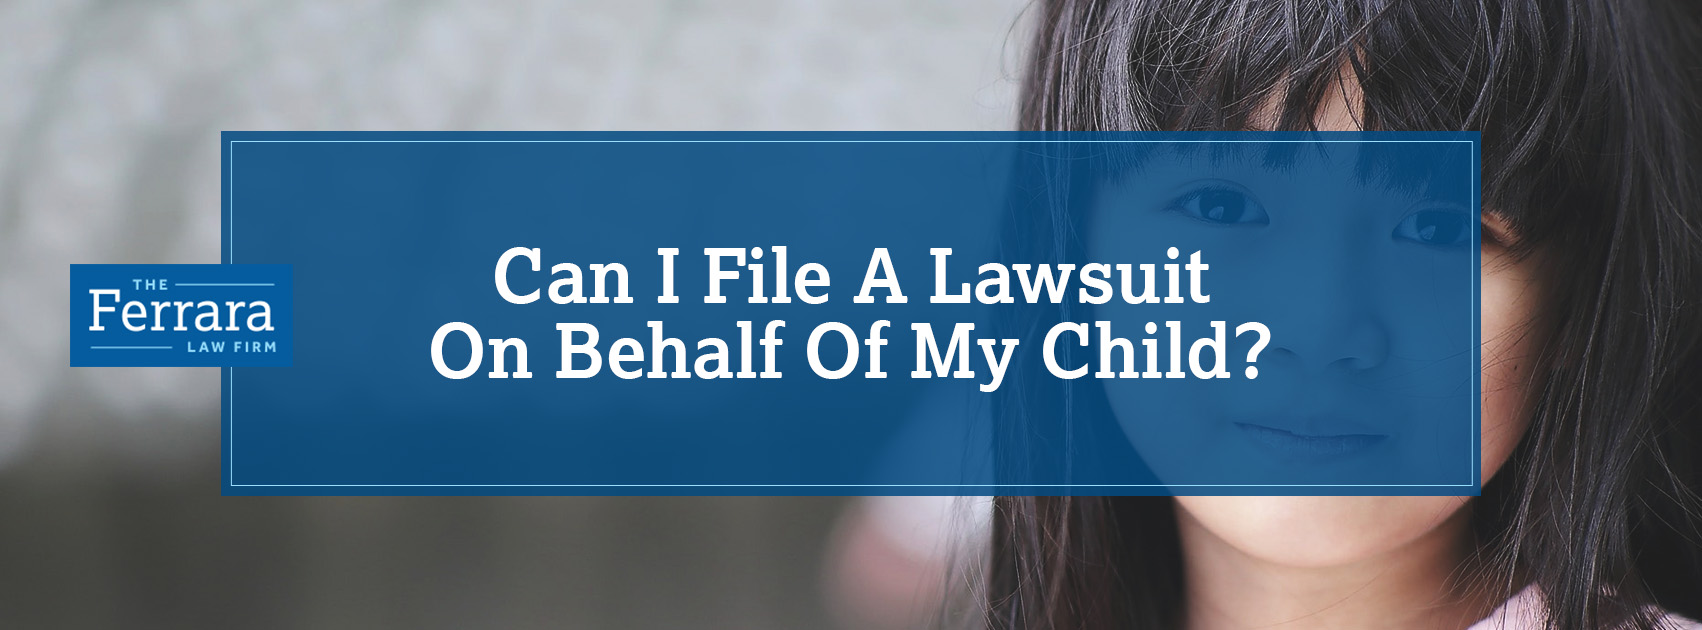 Filing Lawsuit On Behalf Of Child